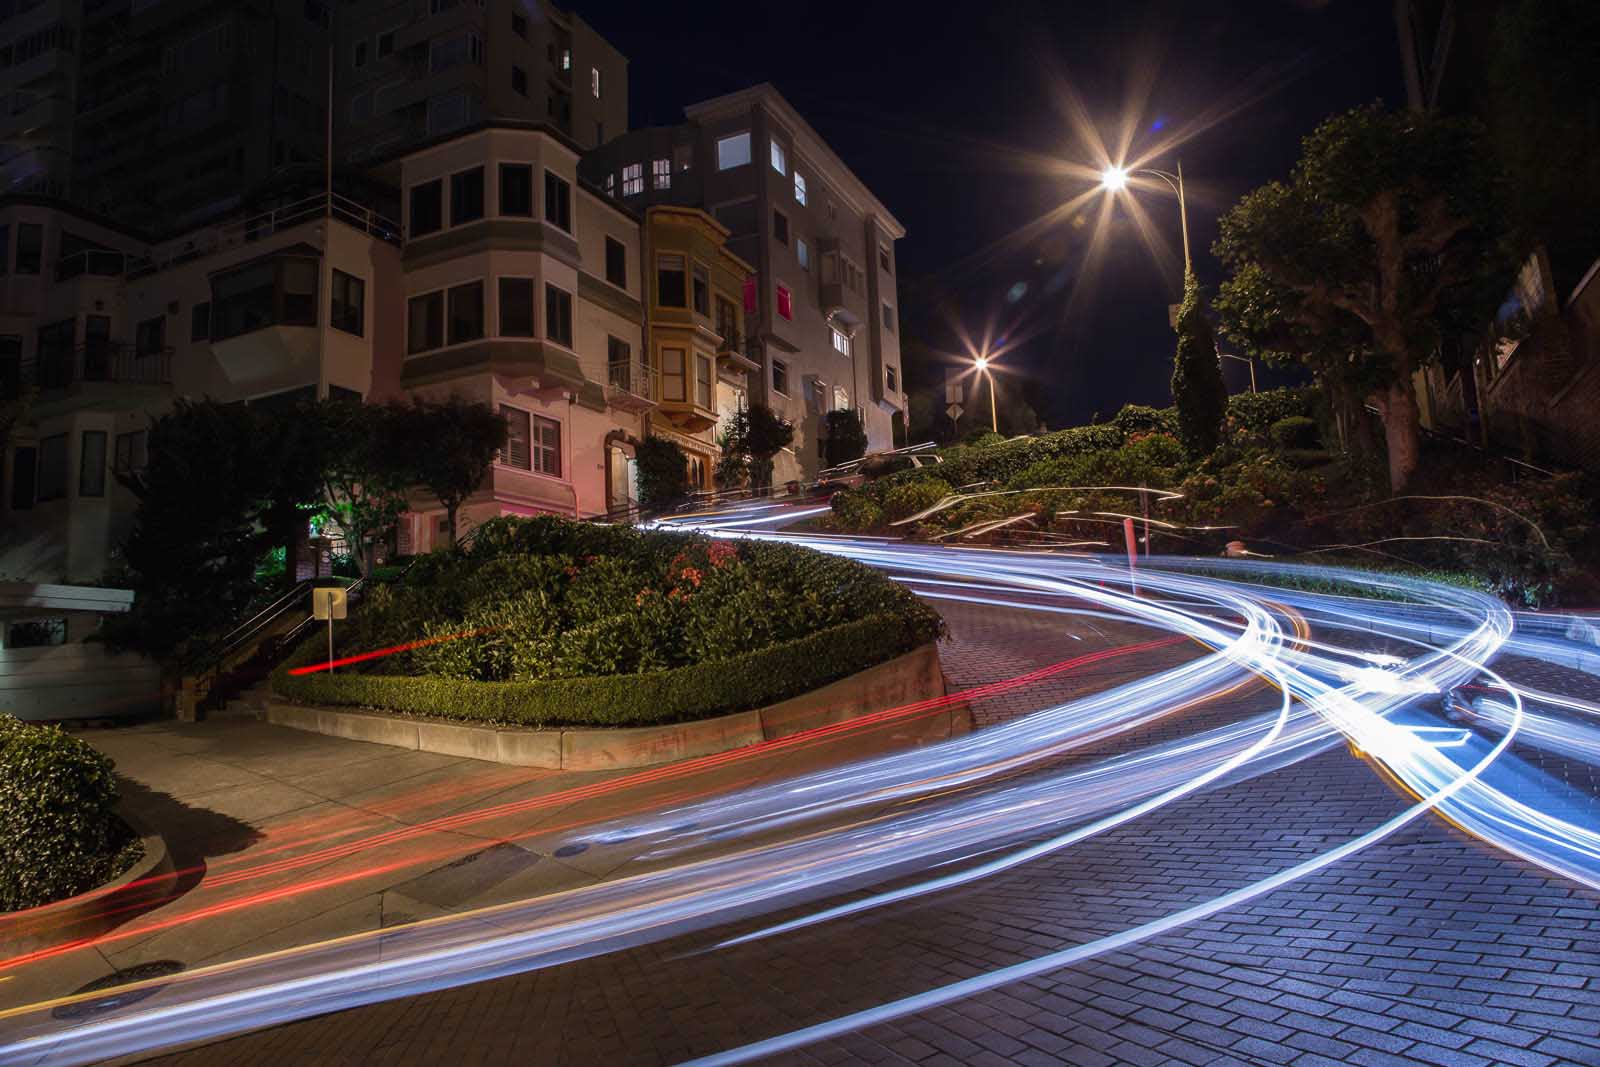 Headlight trails during a night photography shoot after sunset